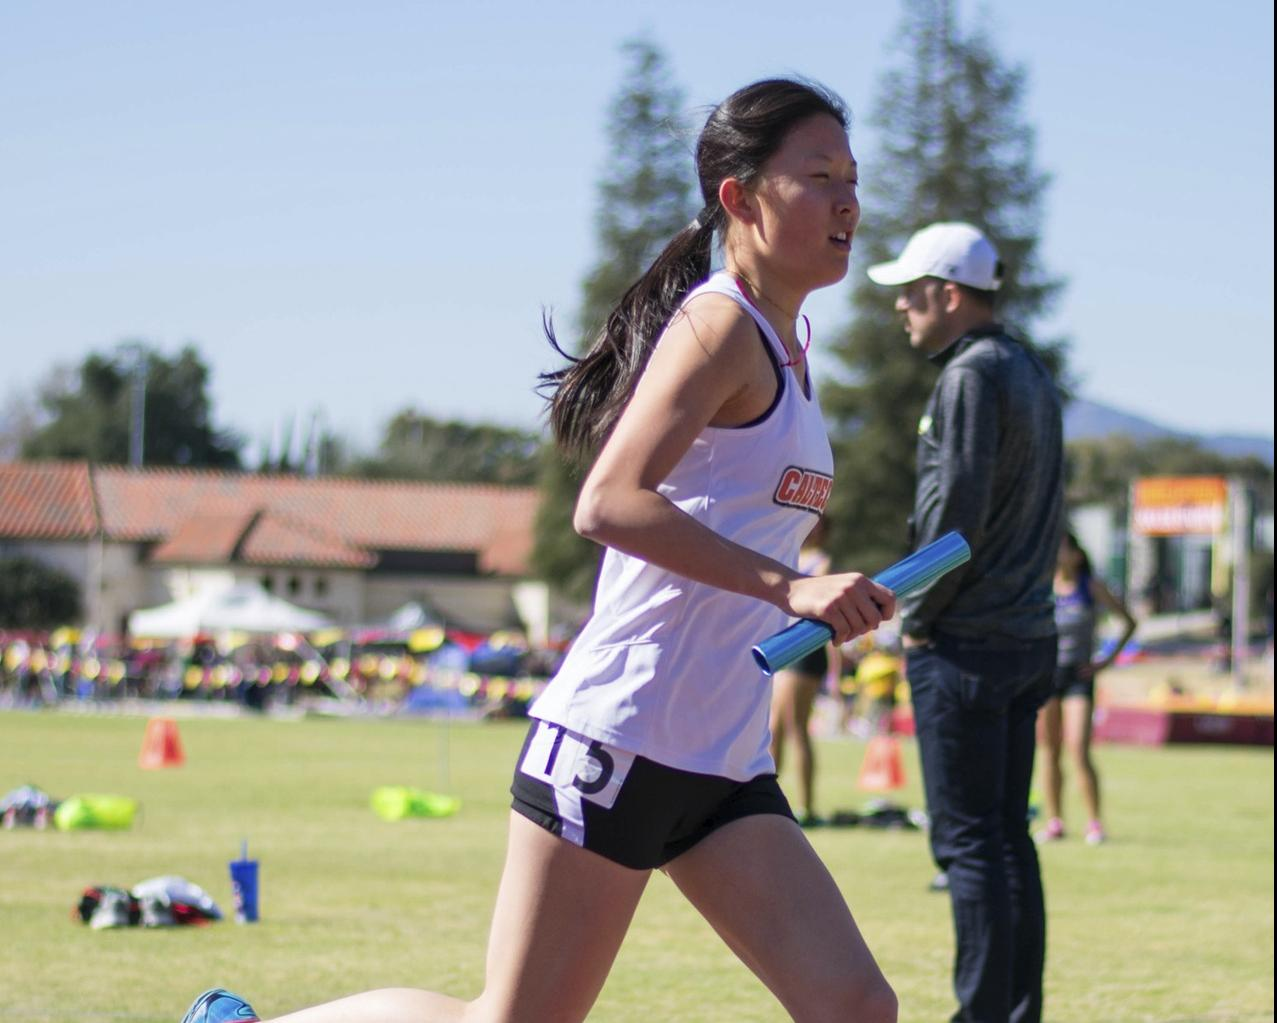 Hu's School Record Leads Historic Day at Oxy